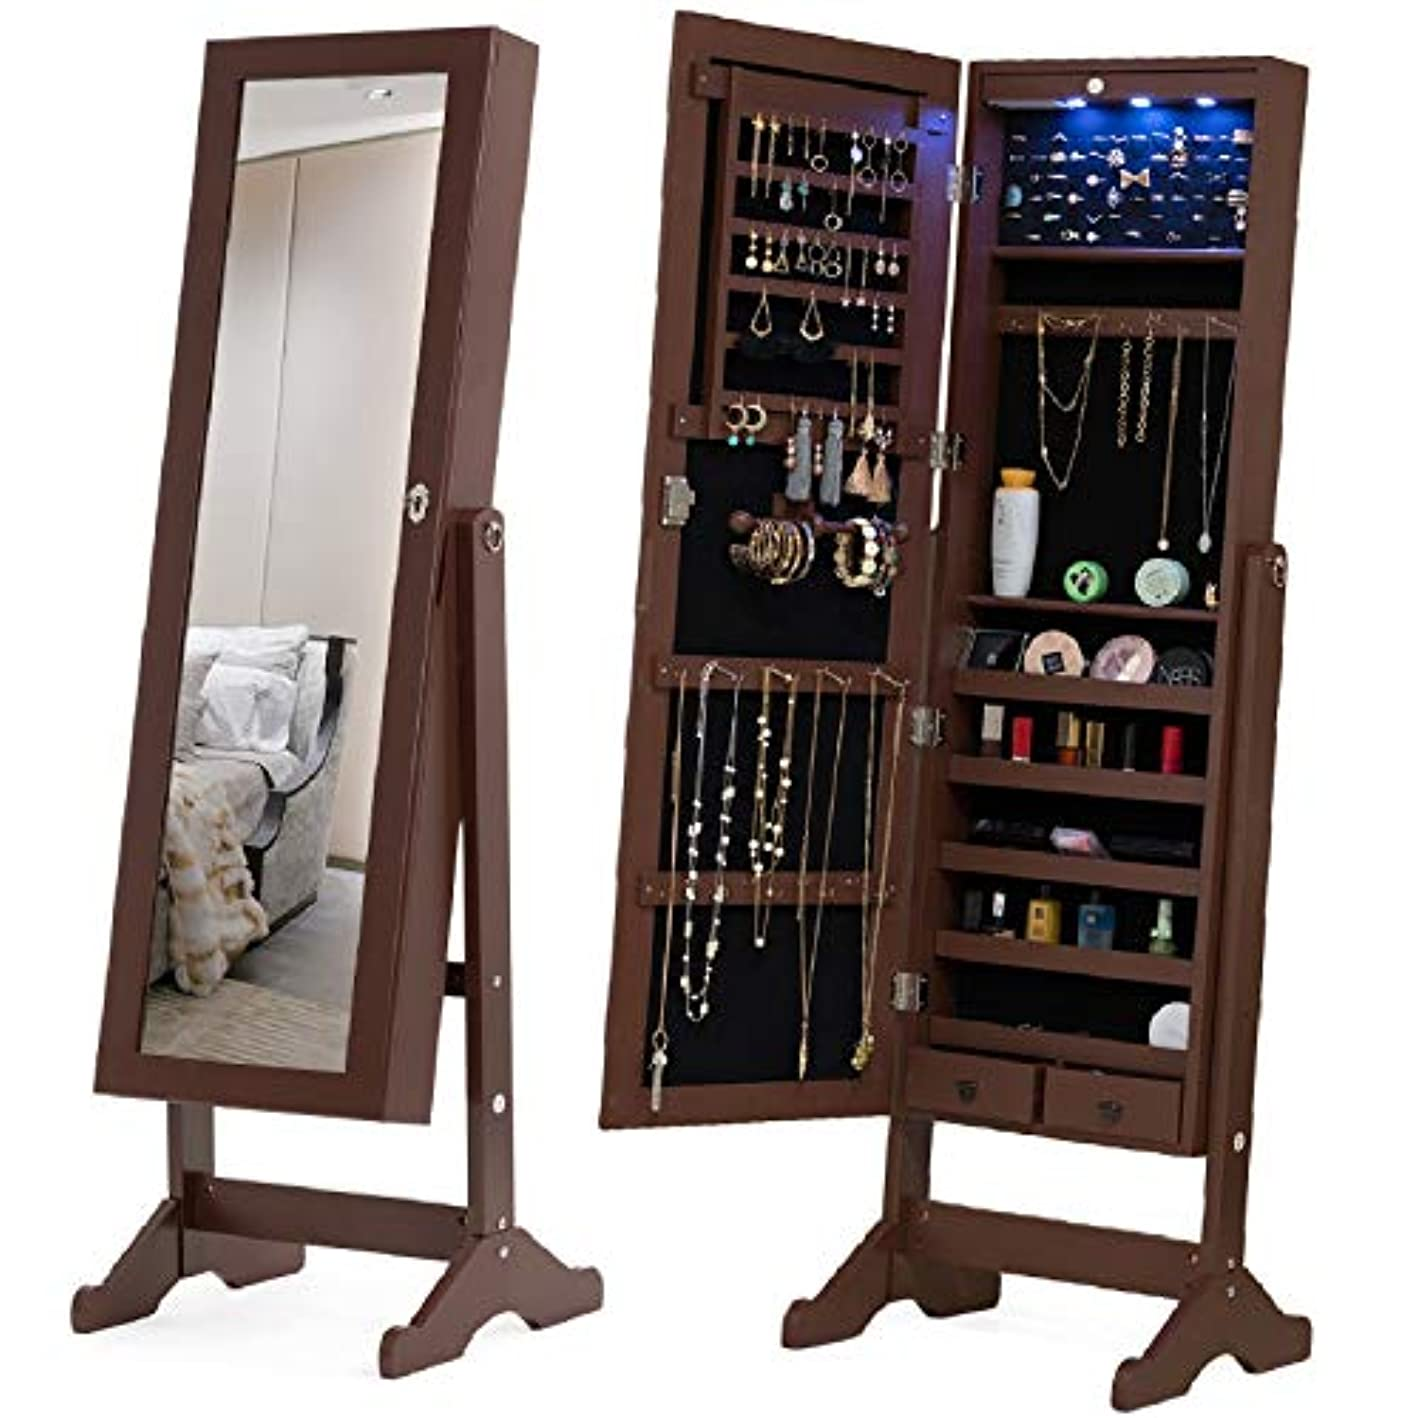 Mecor Jewelry Armoire,LED Standing Mirrored Jewelry Cabinet Organizer Storage Lockable Full Length Mirror Makeup Box w/2 Drawers,5 Shelves,3 Adjustable Angle Brown